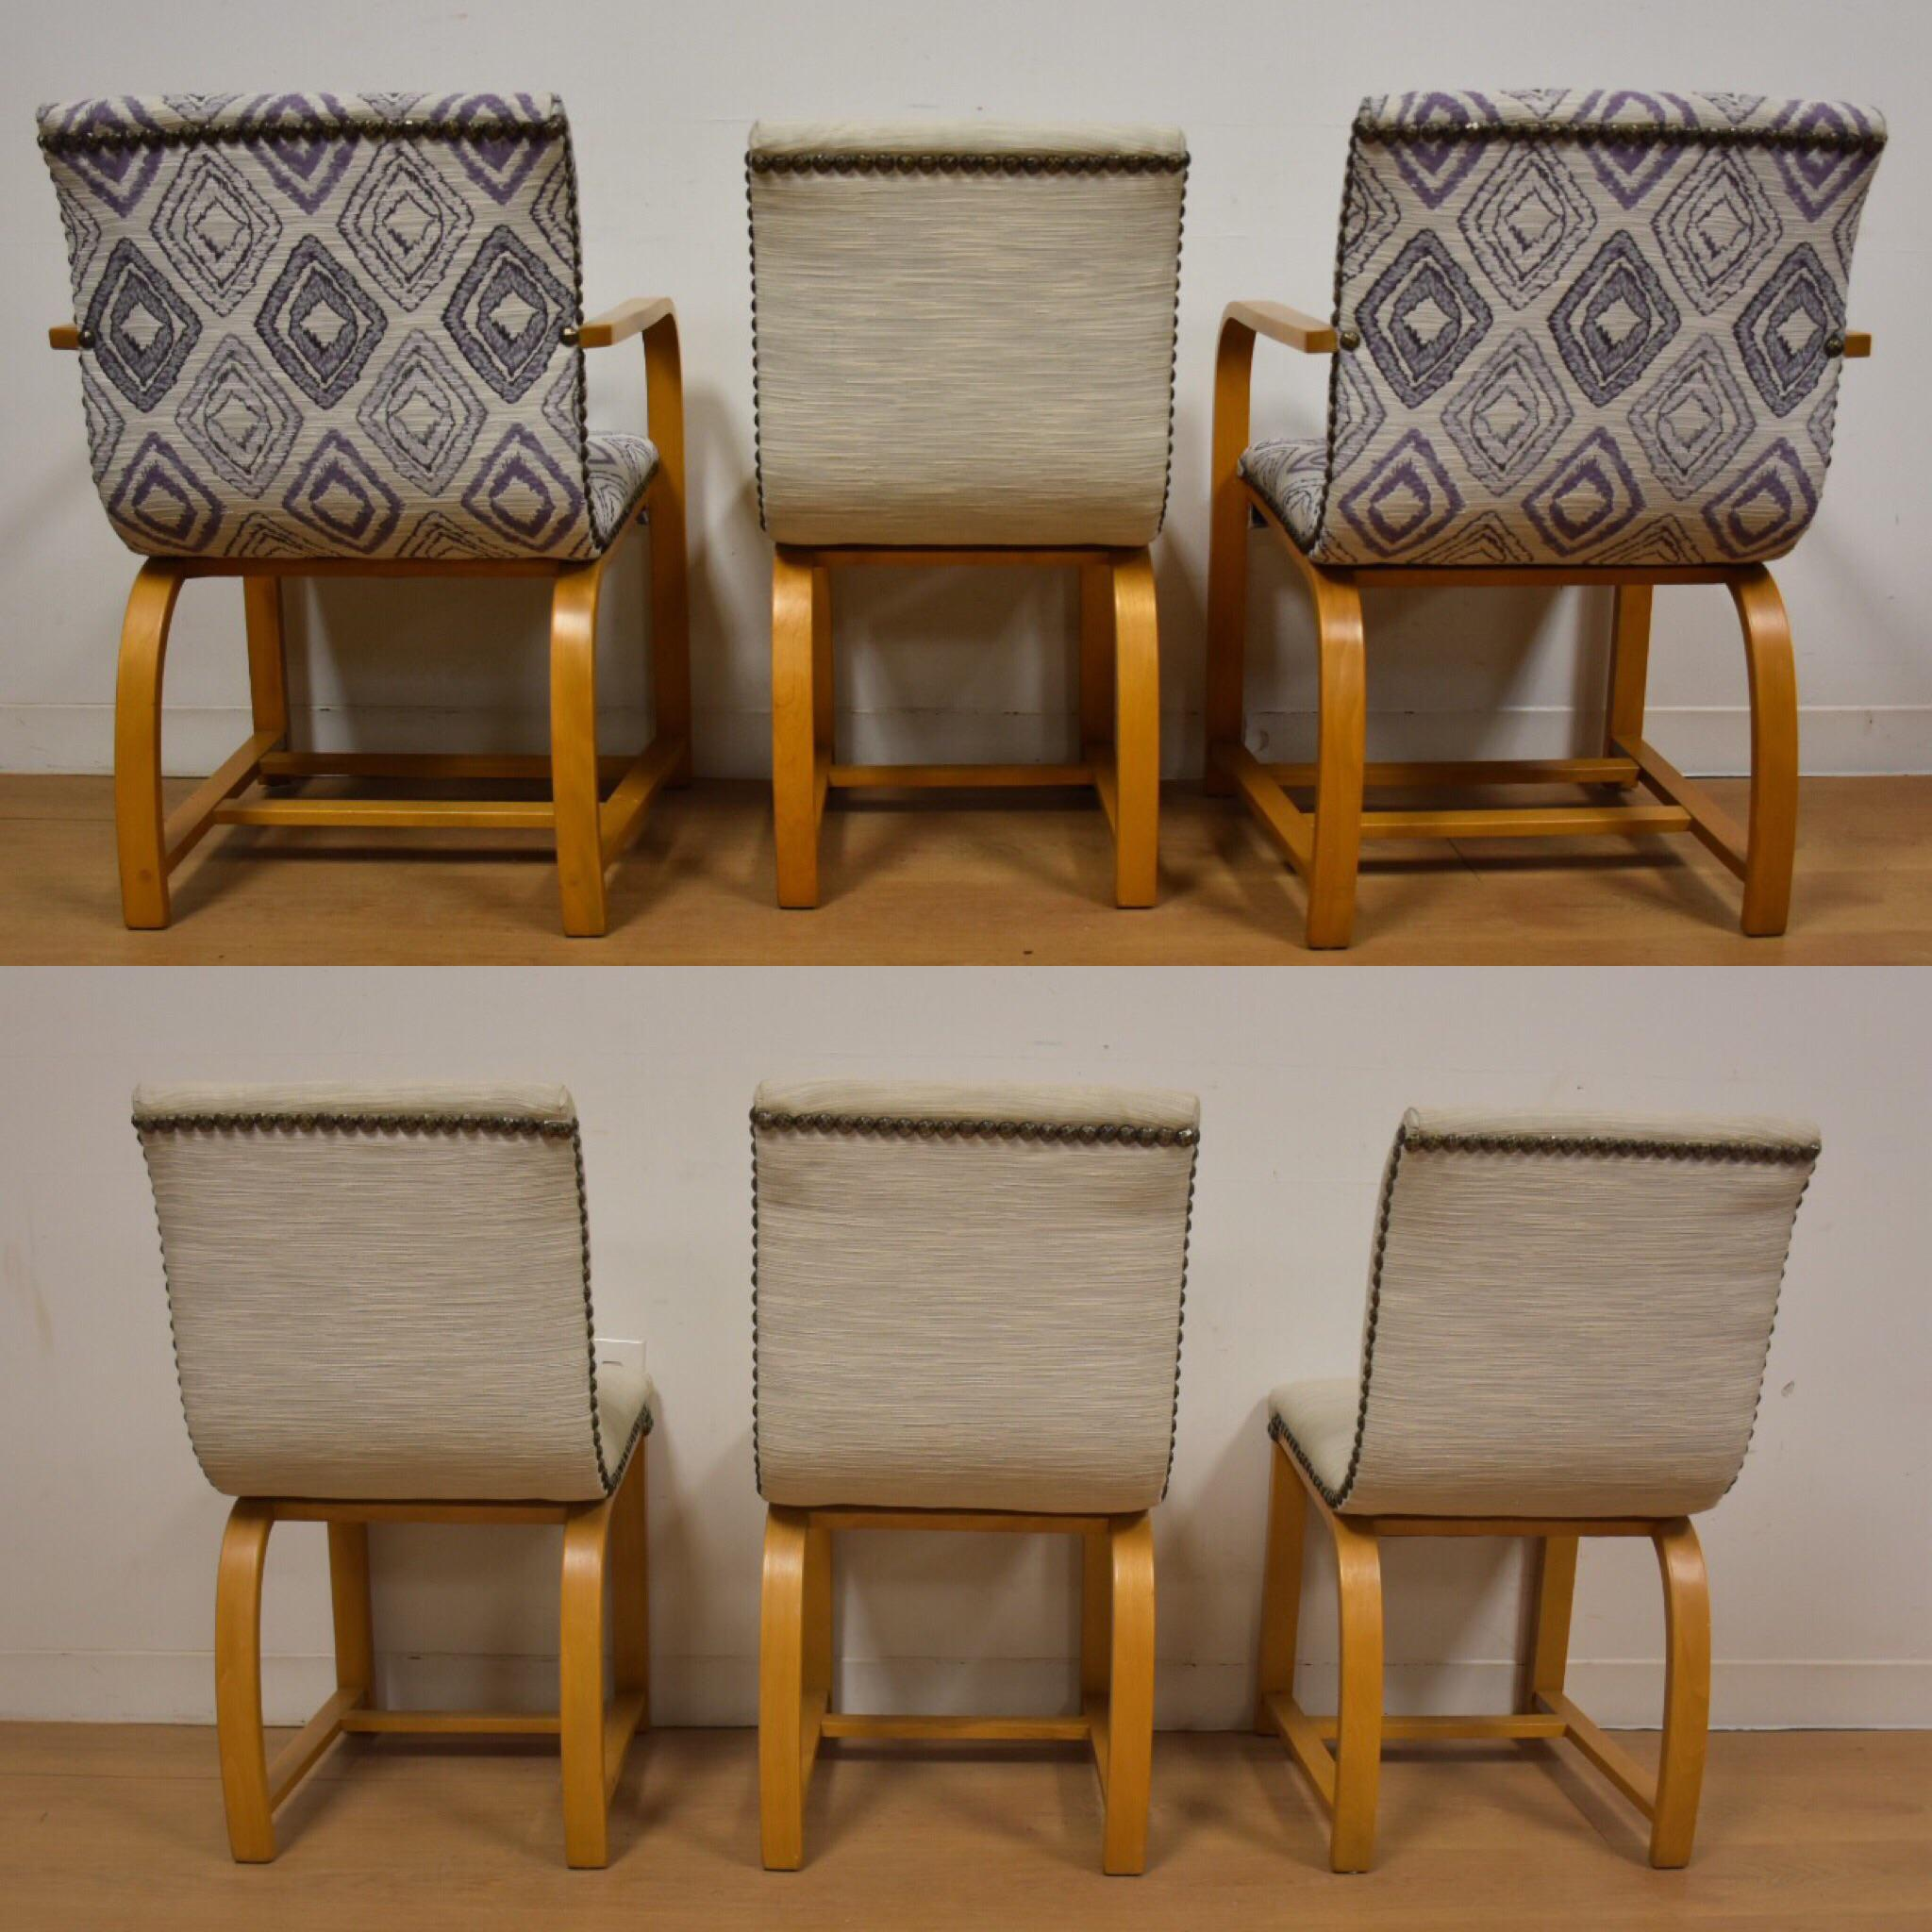 Art Deco Gilbert Rohde Art Deco Modern Dining Chairs   6 For Sale   Image 3